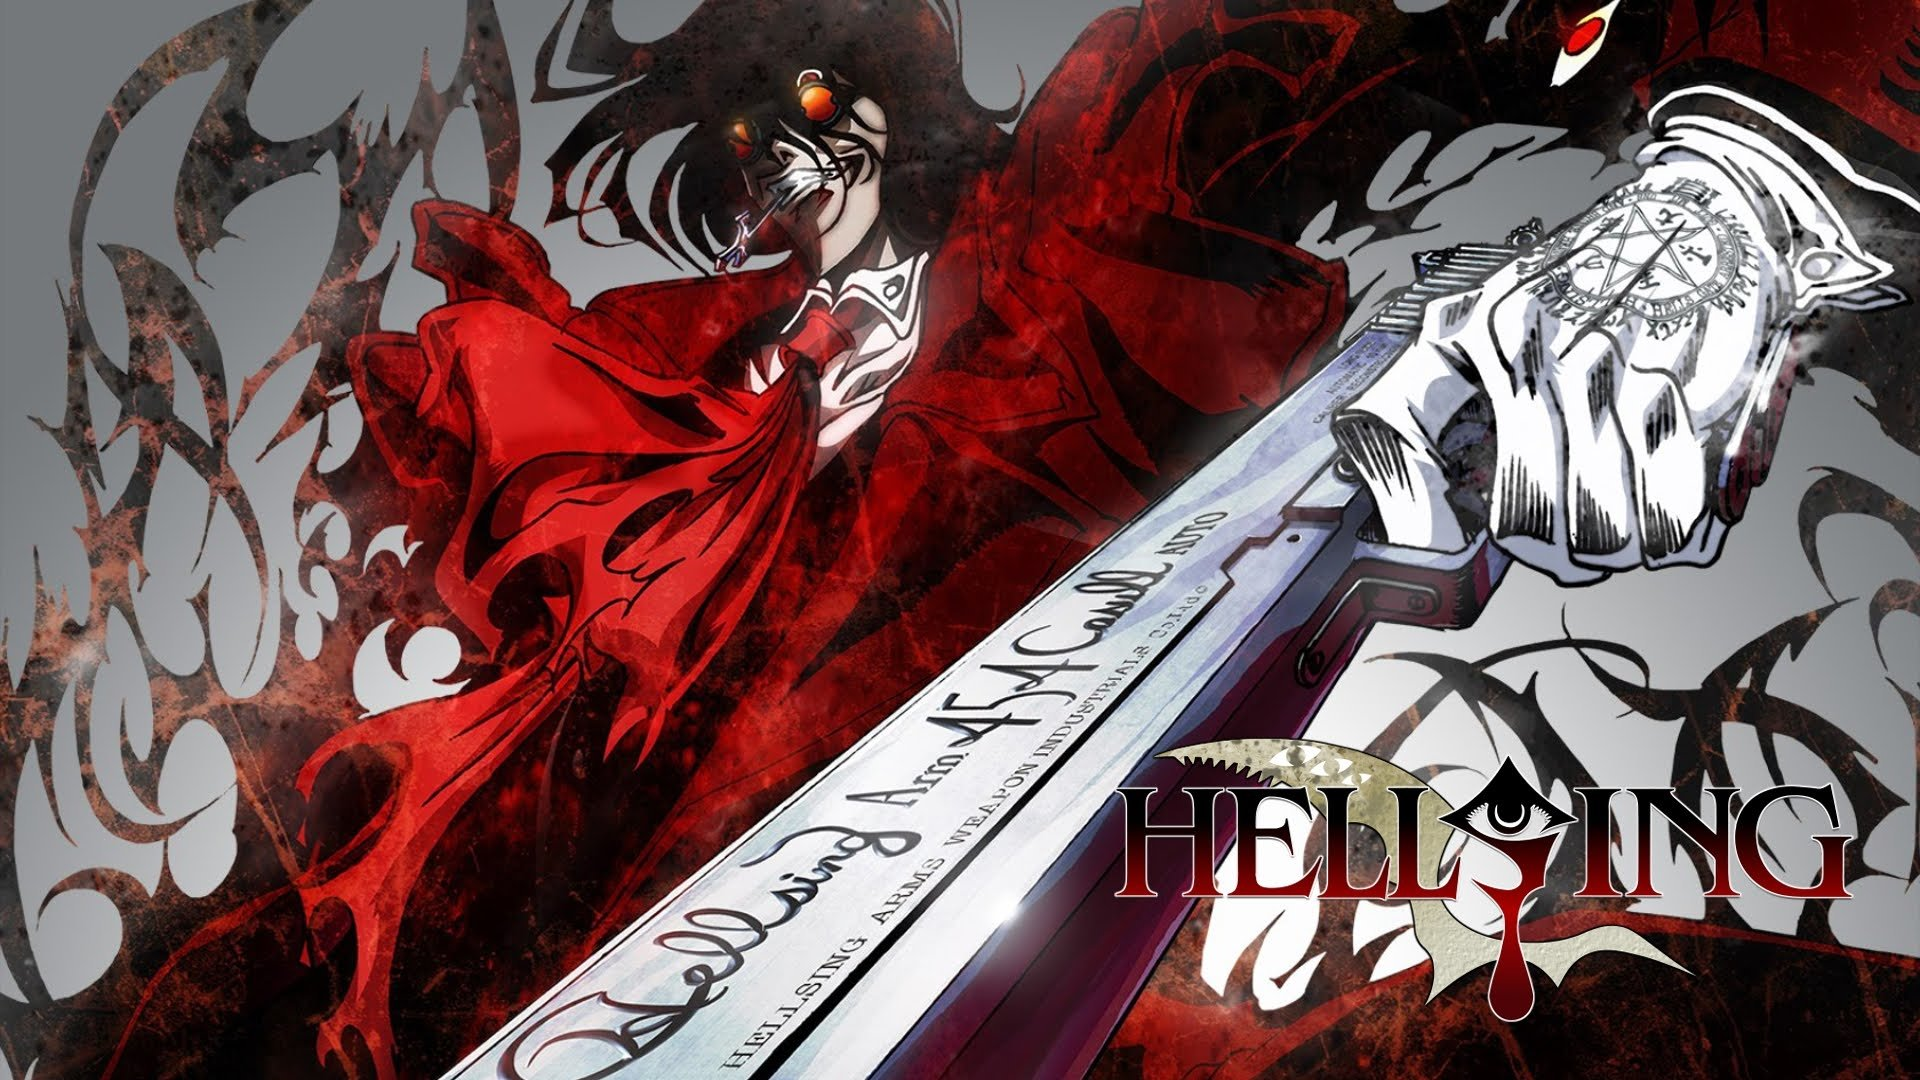 58 Hellsing Hd Wallpapers Background Images Wallpaper Abyss